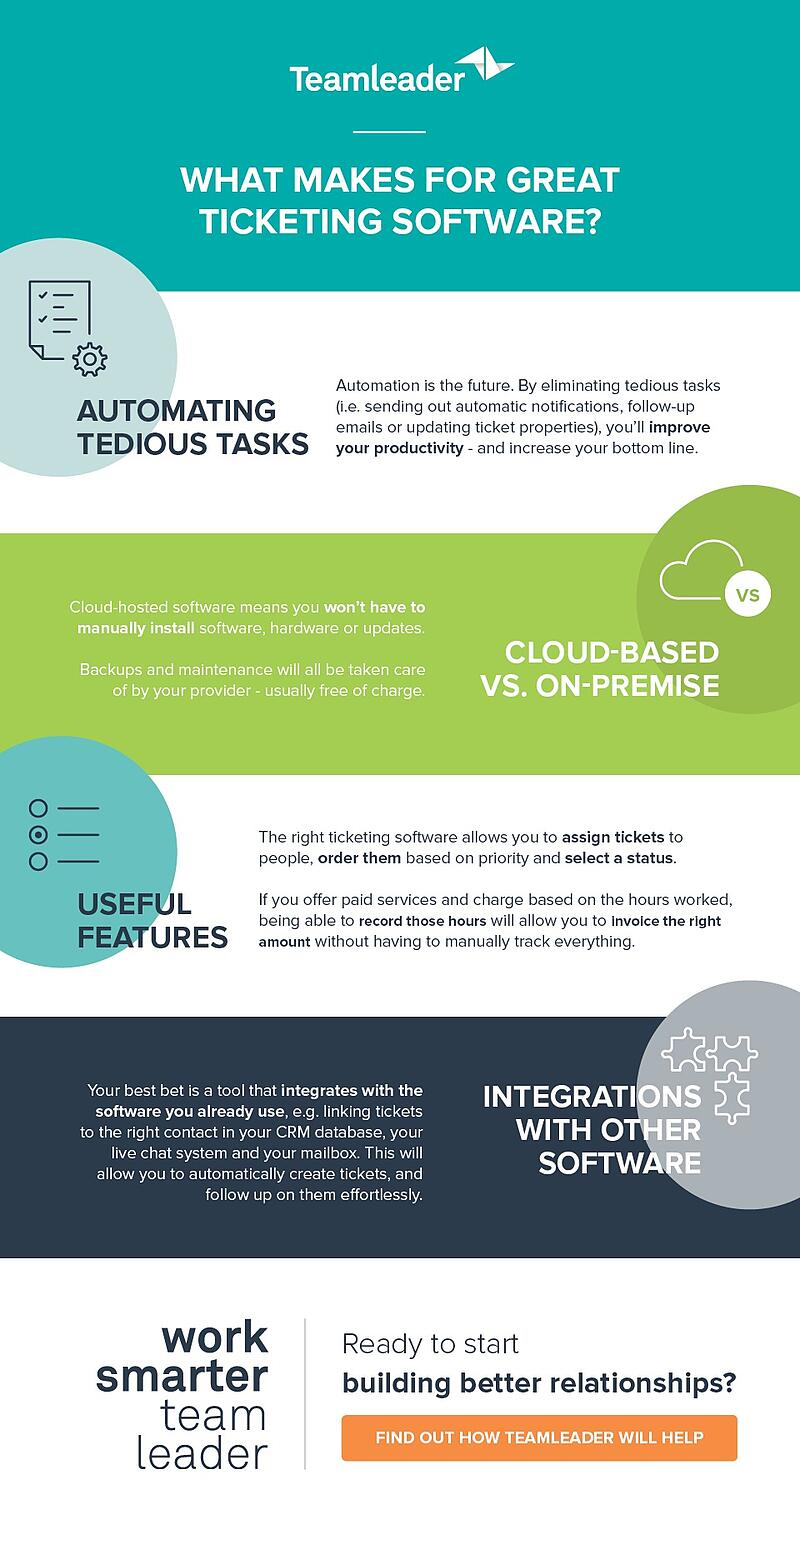 What makes for great ticketing software infographic